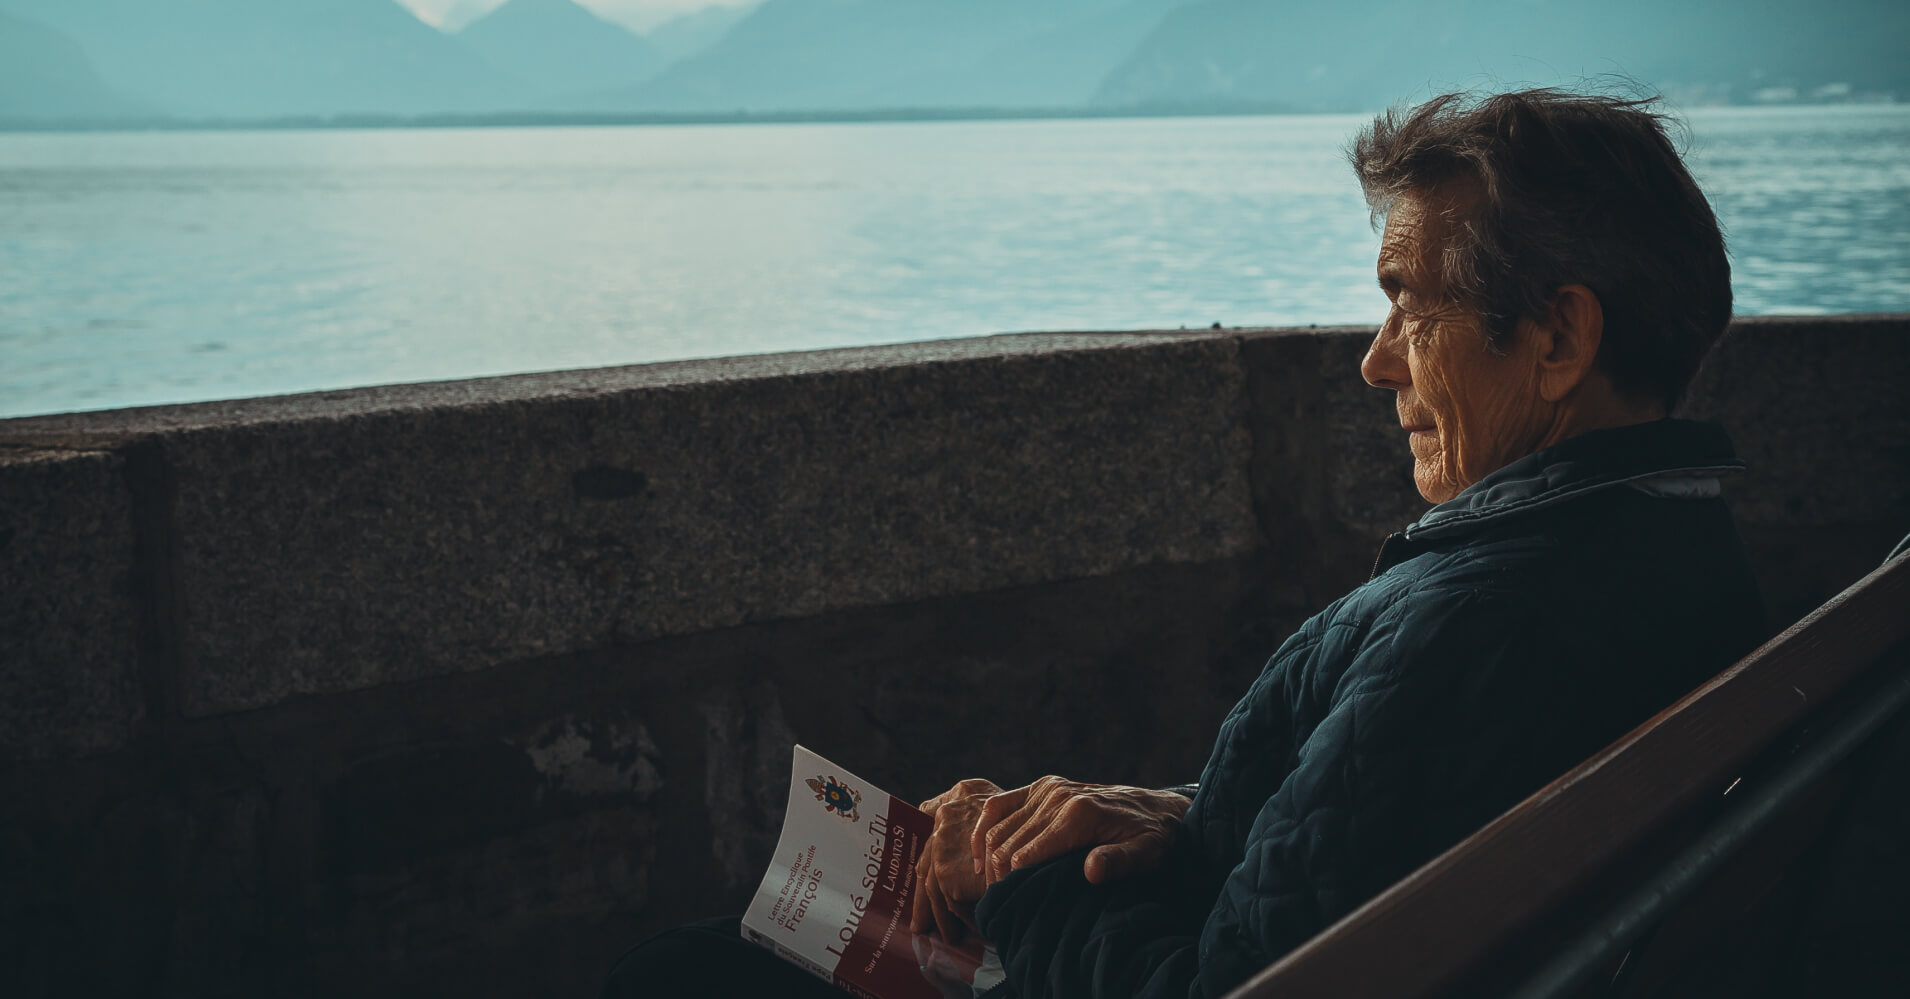 older man reading a book looking out at the sea